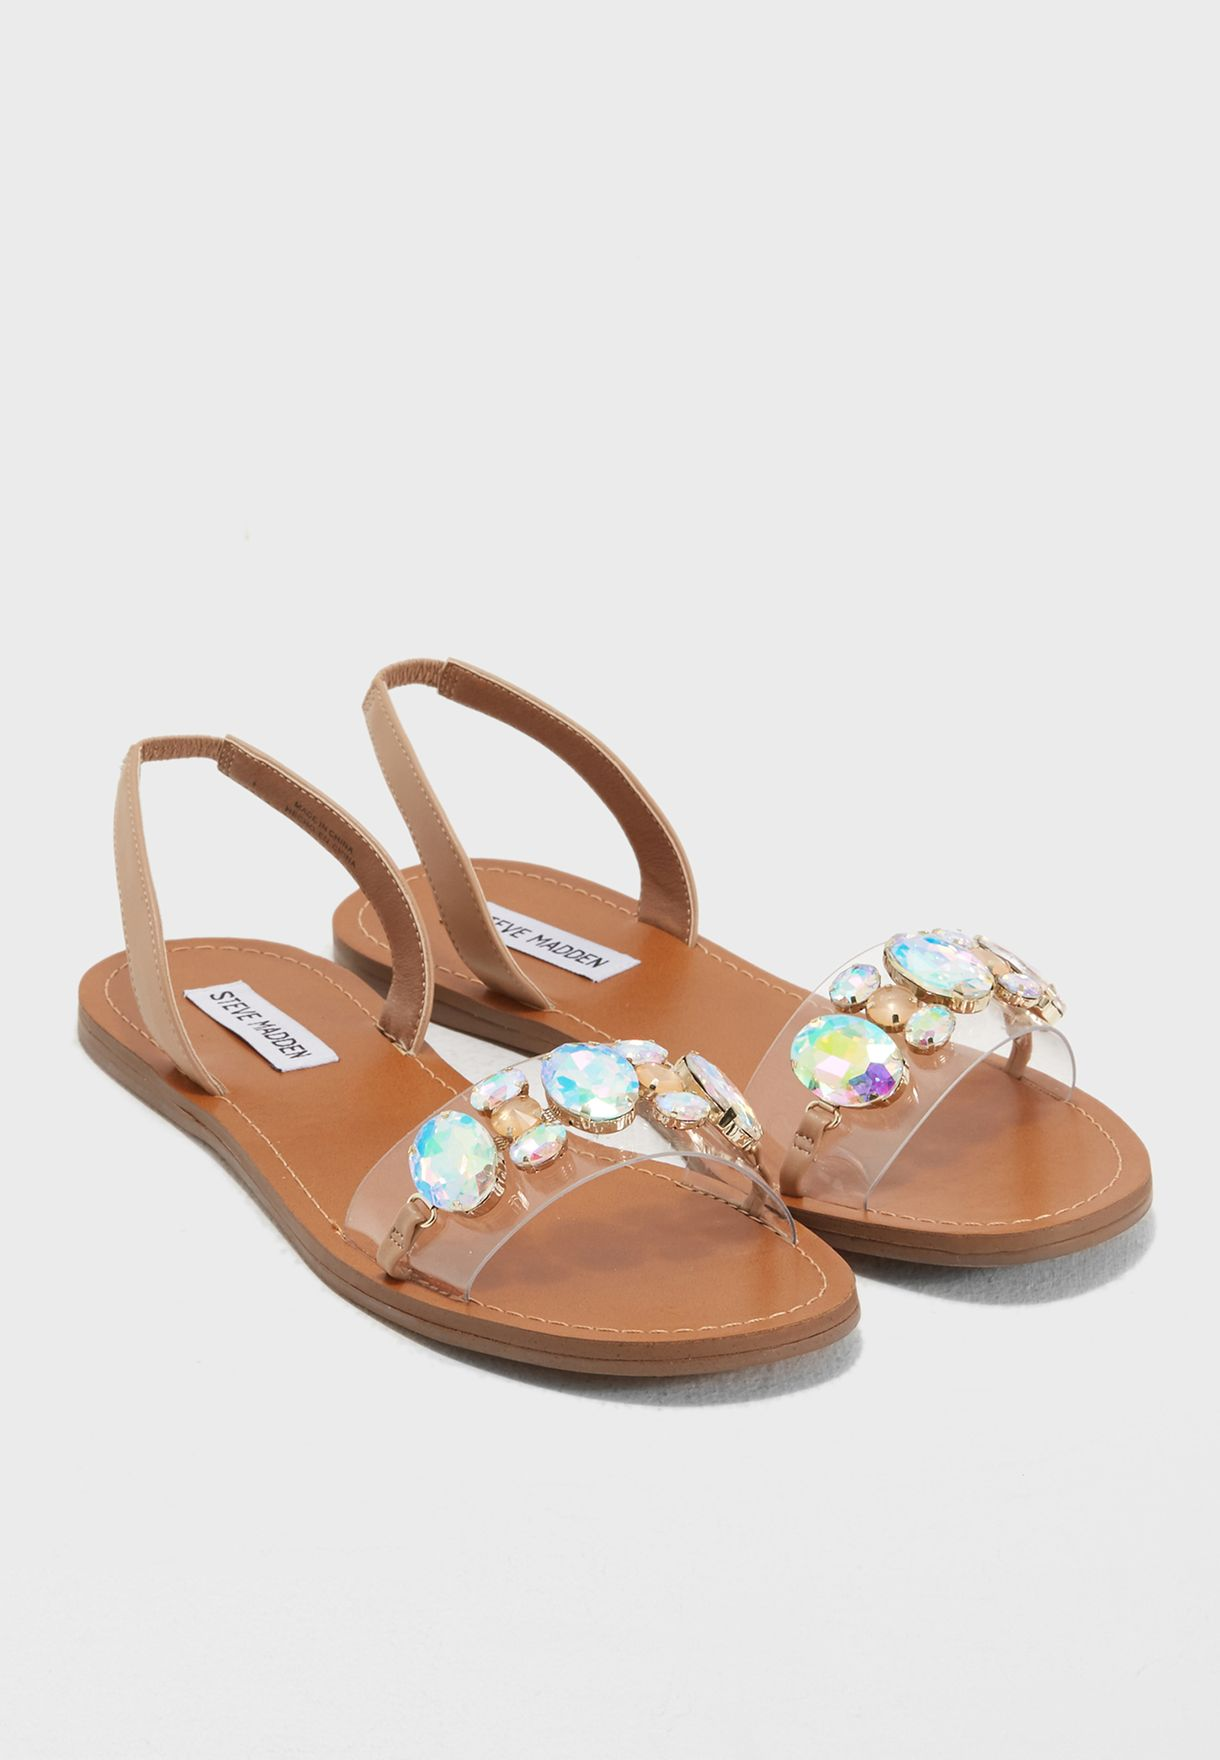 ce8307f890e Shop Steve Madden browns Alice Flat Sandals ALICE for Women in UAE ...